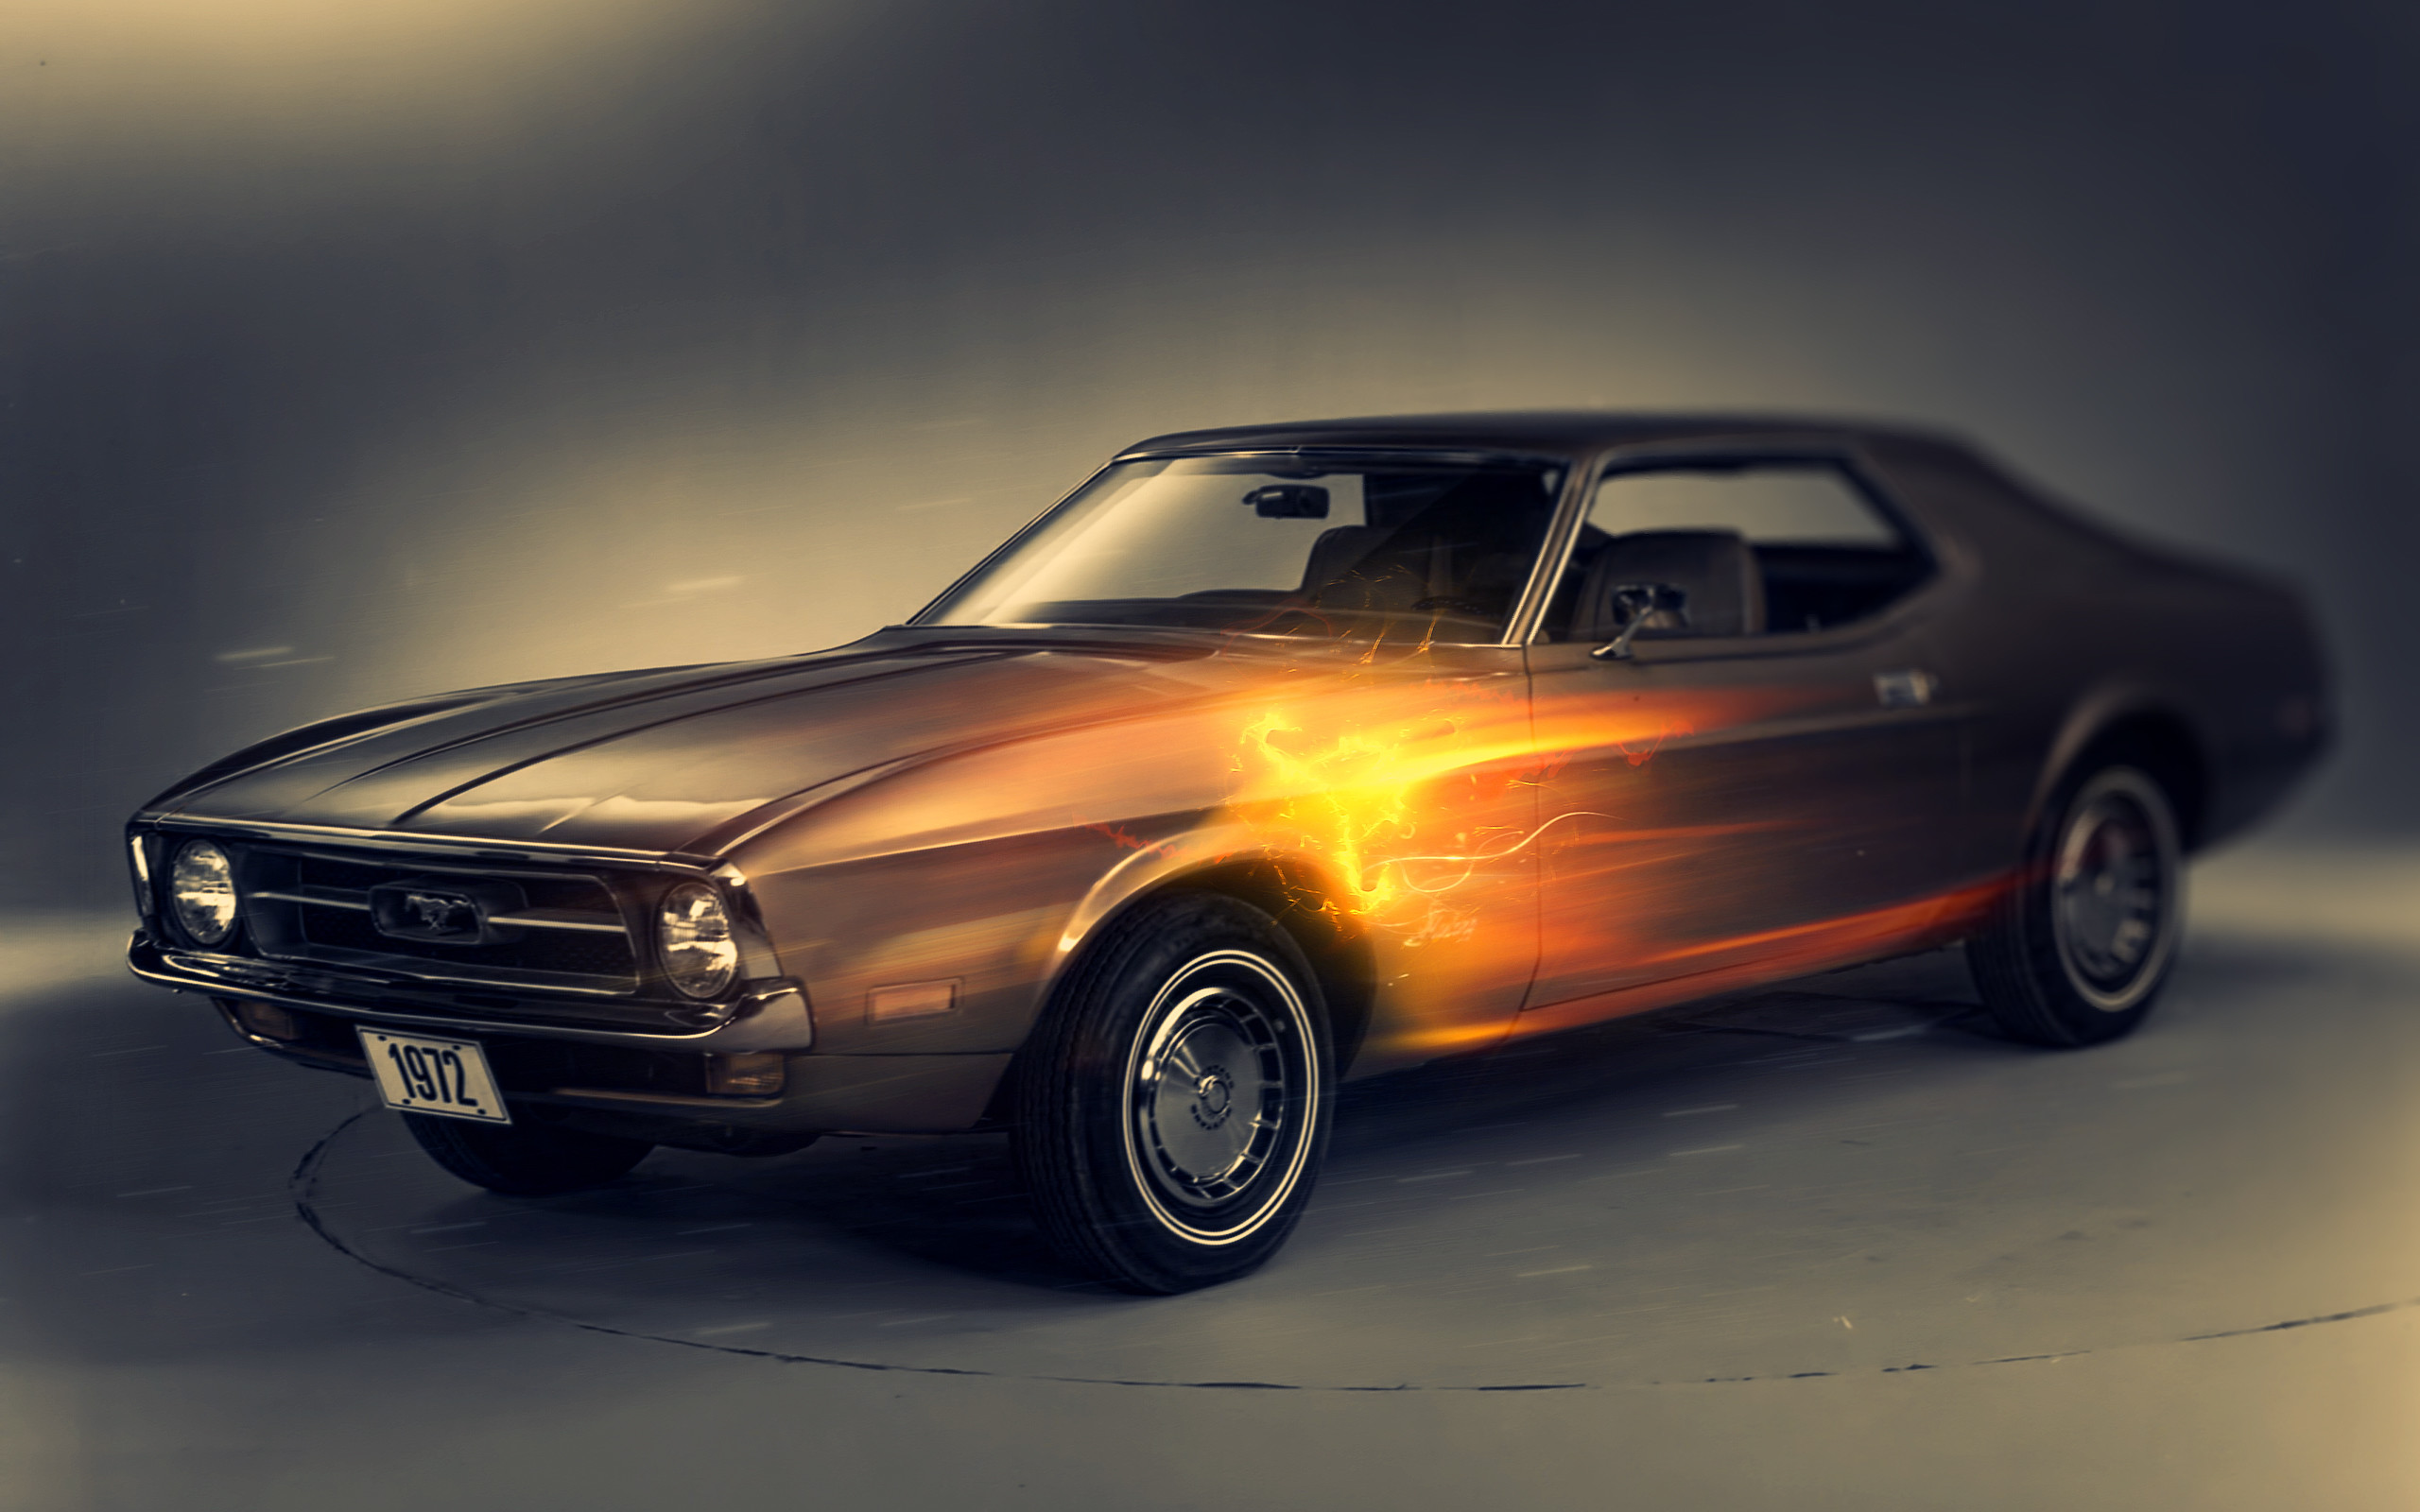 Ford Mustang Giugiaro Wallpaper Ford Cars (54 Wallpapers) – HD Wallpapers